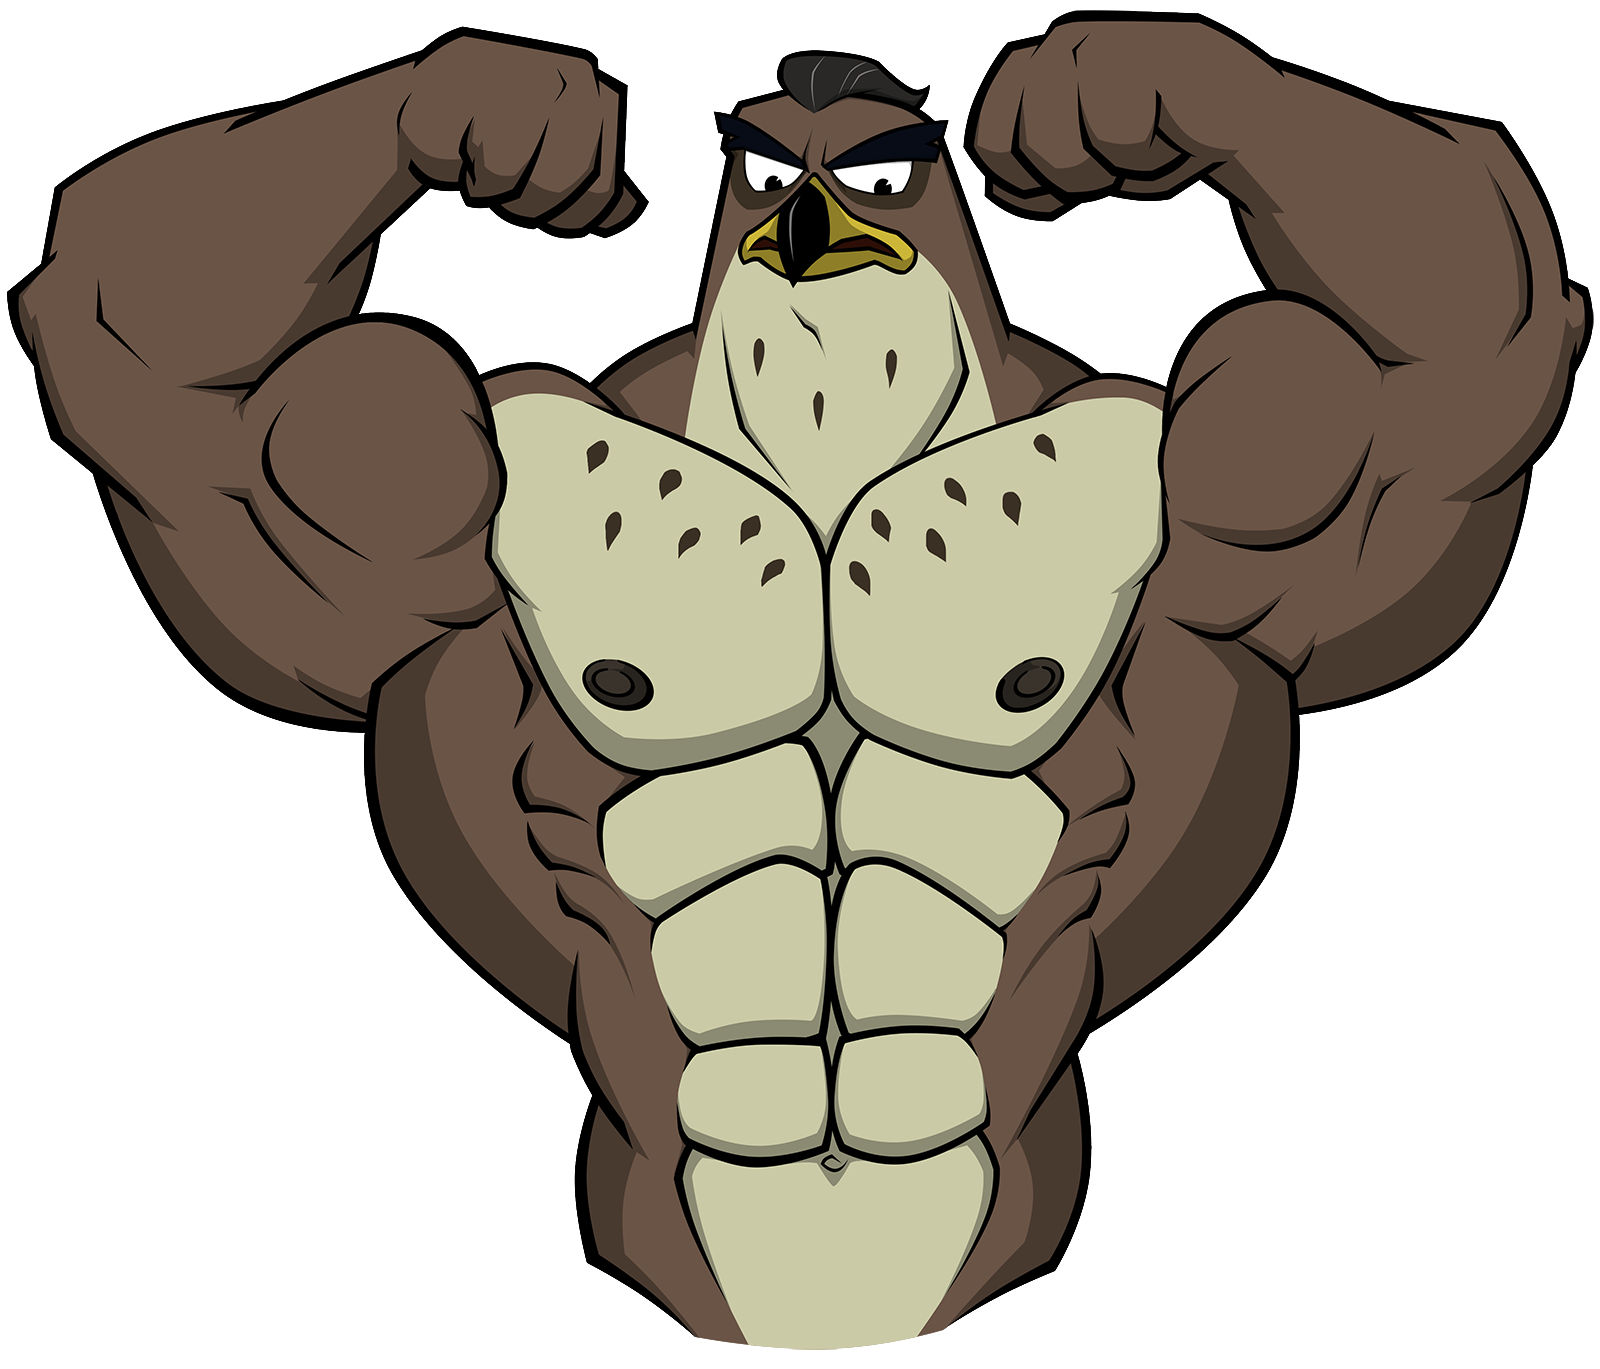 Muscle clipart falcon. Graves shaded by wolfoxokamichan